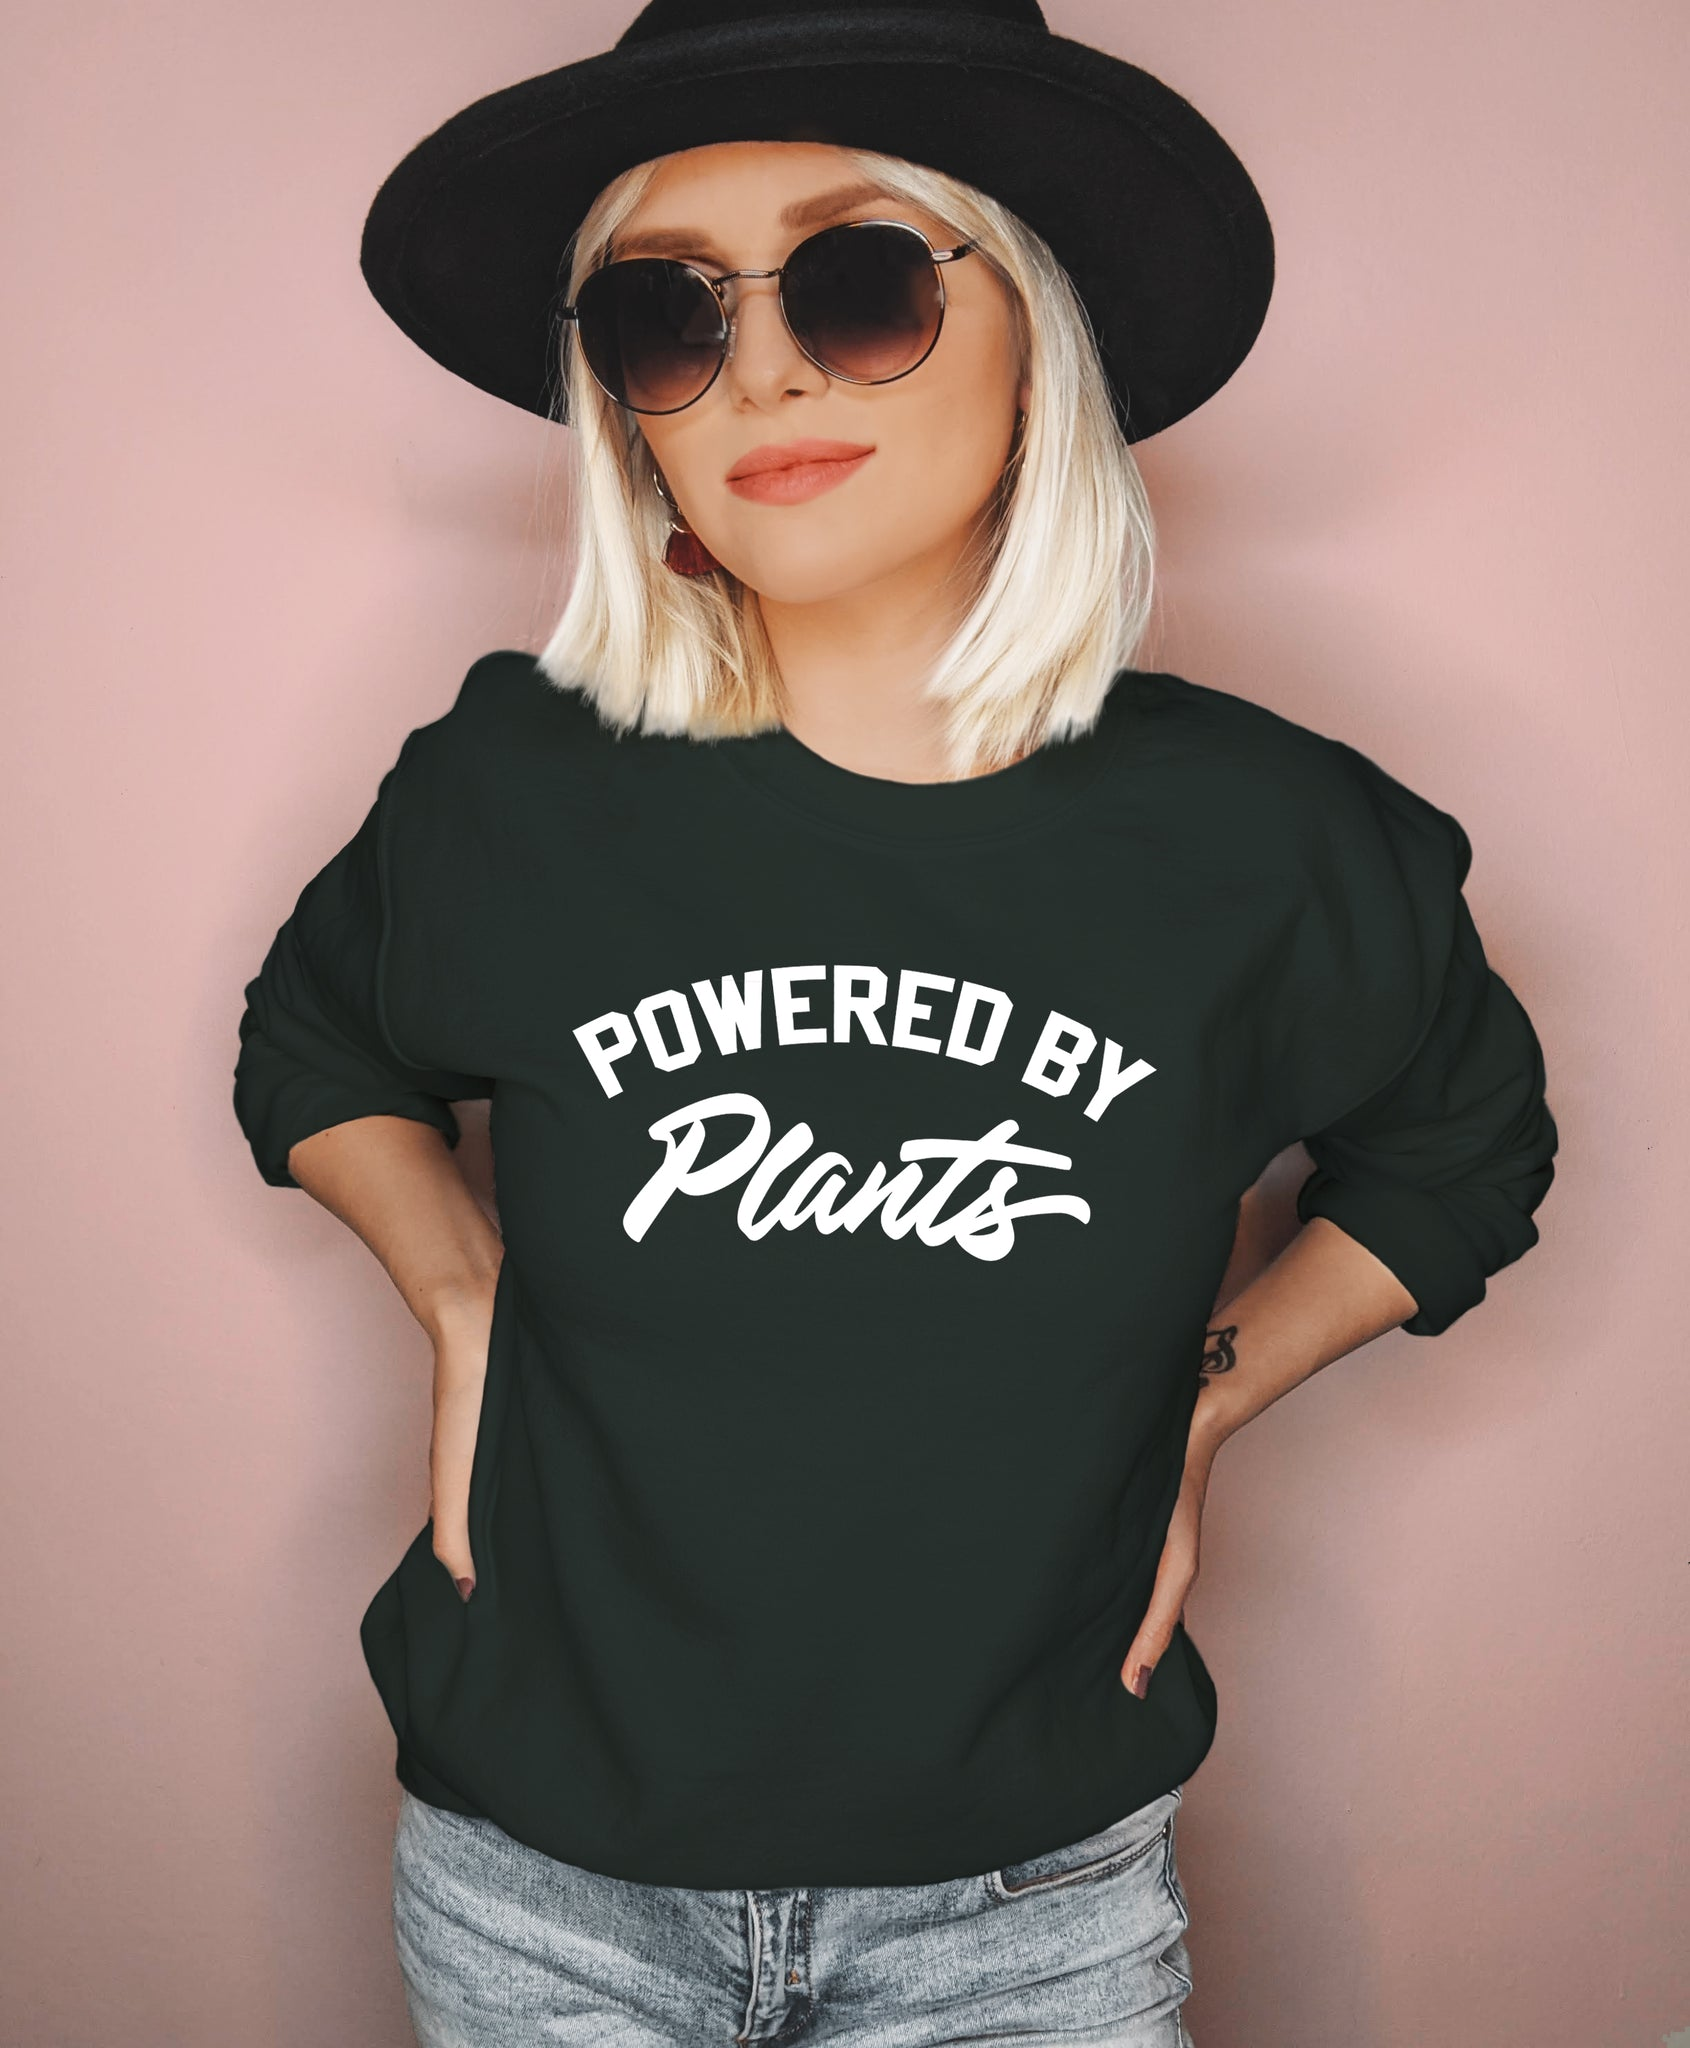 Forest sweatshirt saying powered by plants - HighCiti